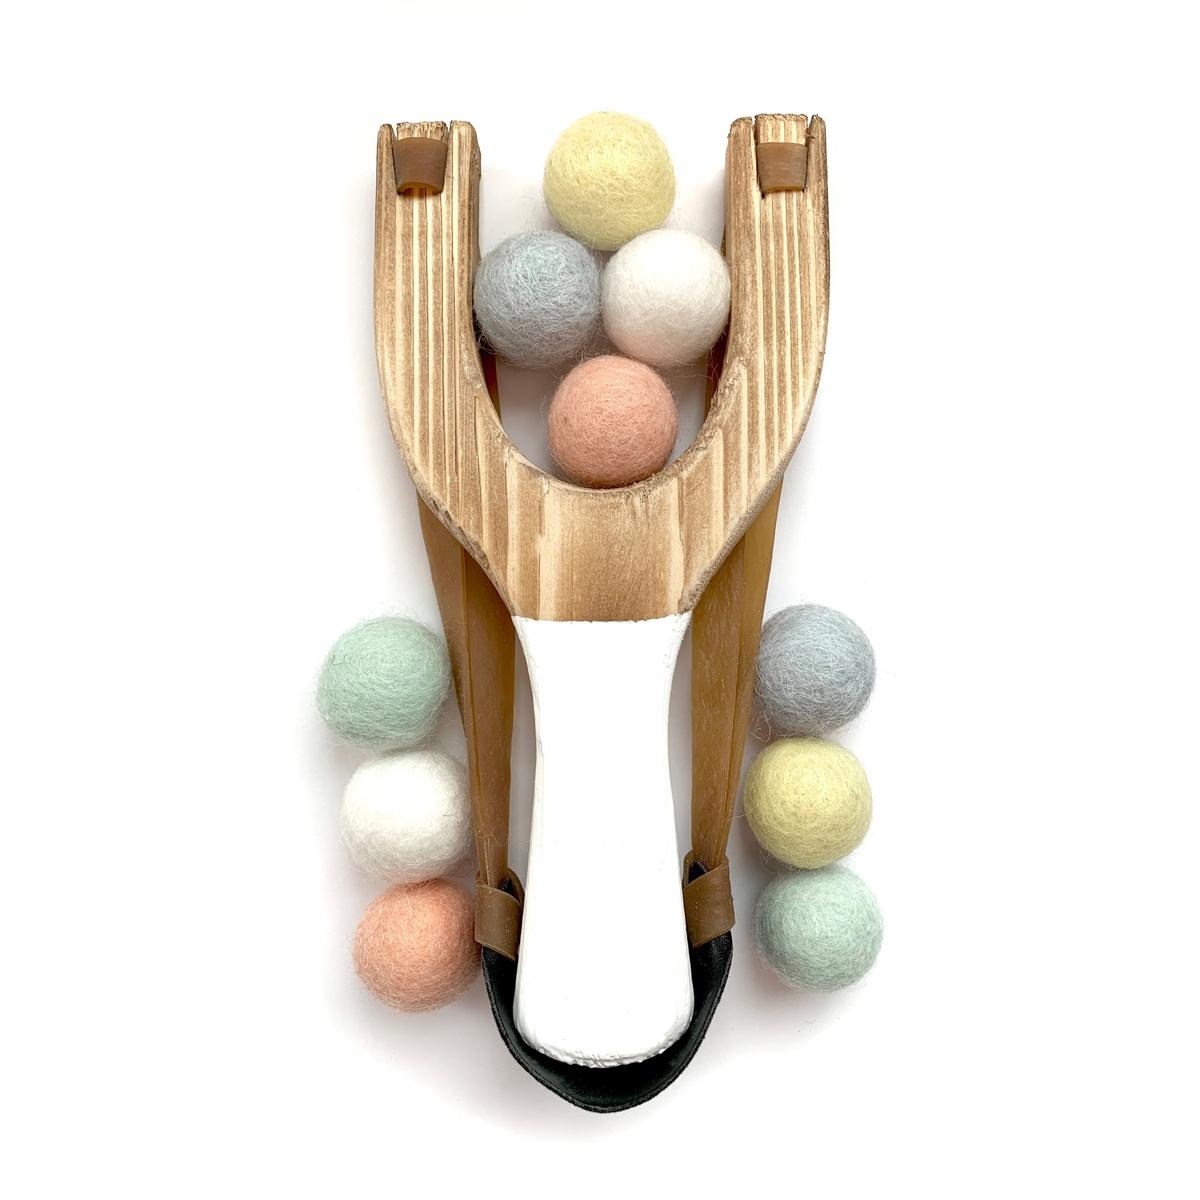 Wooden Toy Slingshot with Pastel Mix Felt Balls